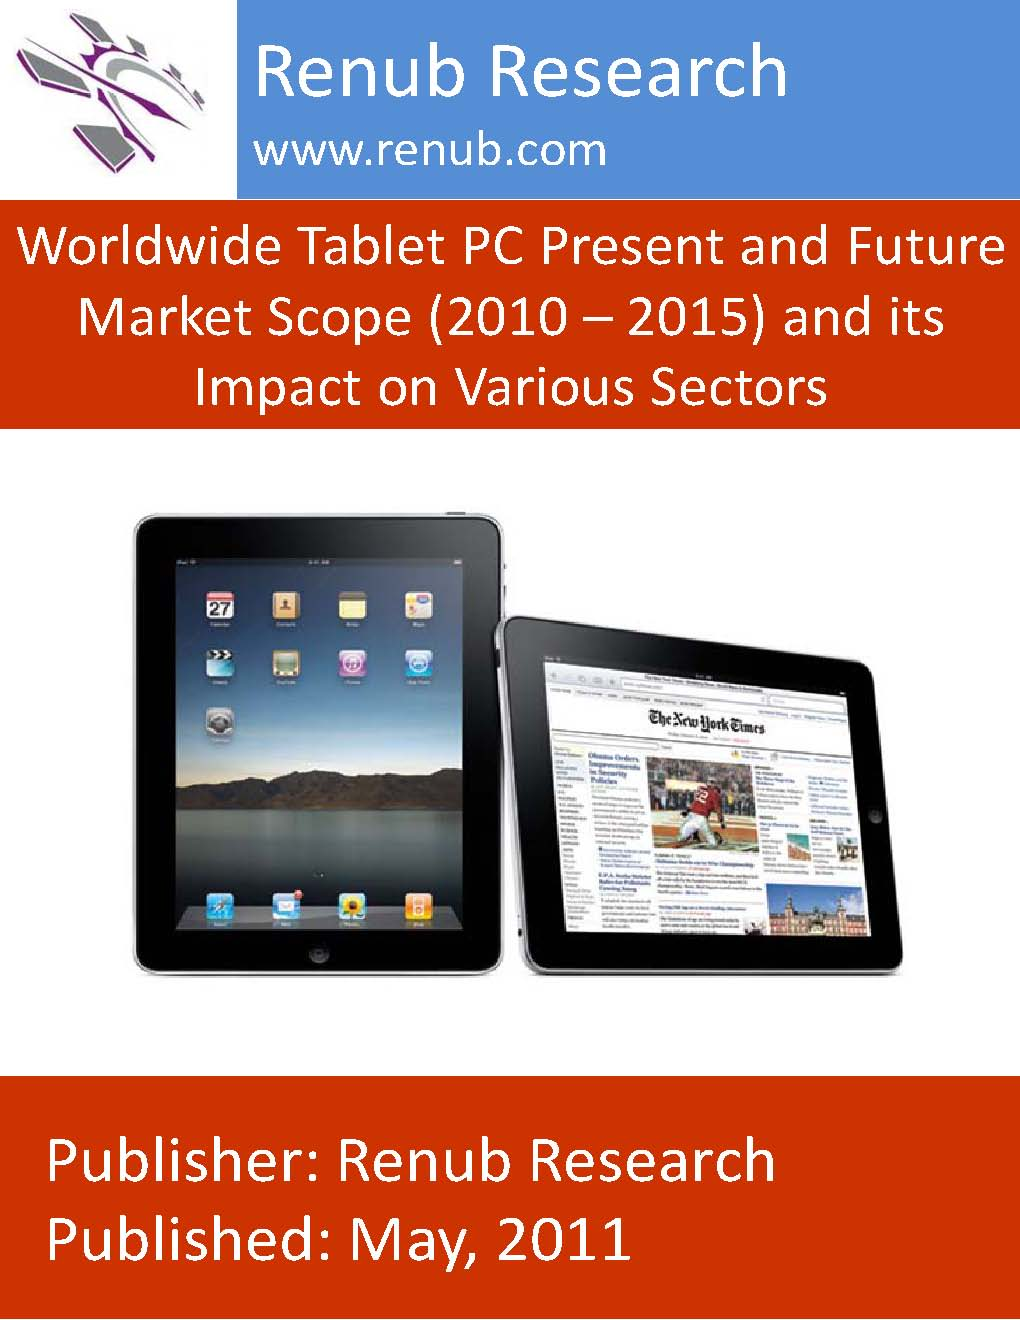 Worldwide Tablet PC Present and Future Market Scope (2010 - 2015) and its Impact on Various Sectors